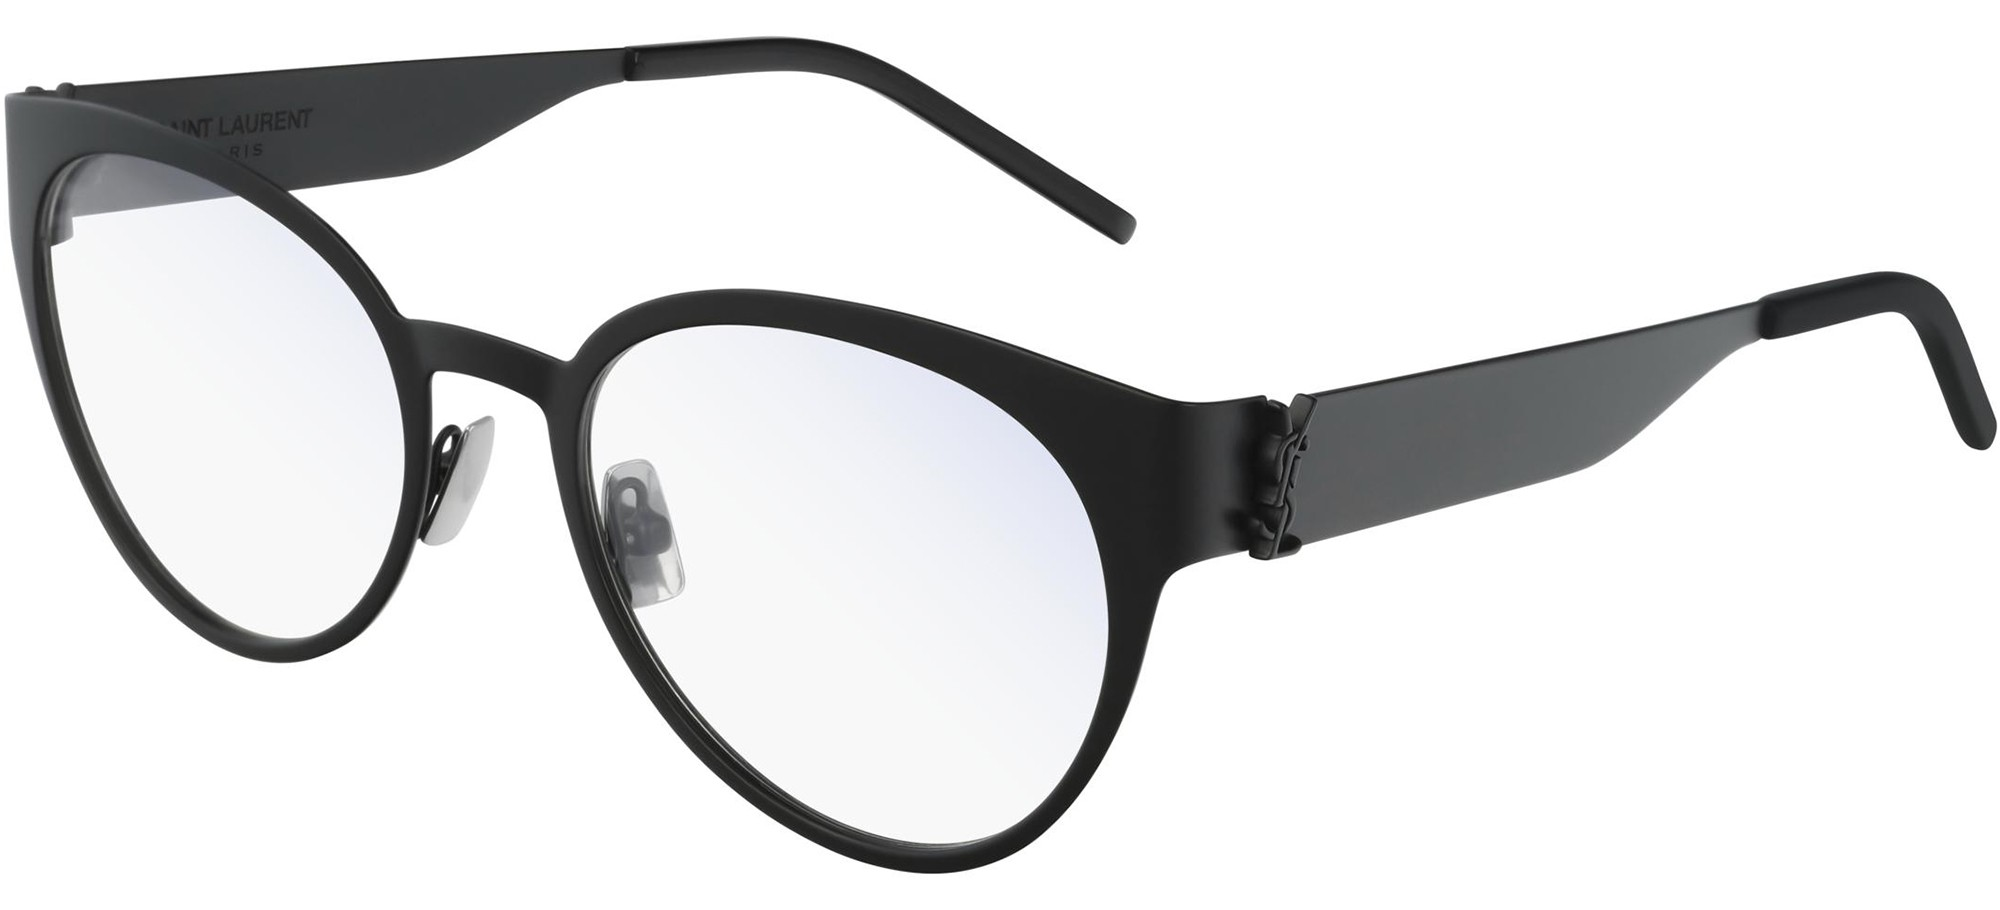 Saint Laurent brillen SL M45